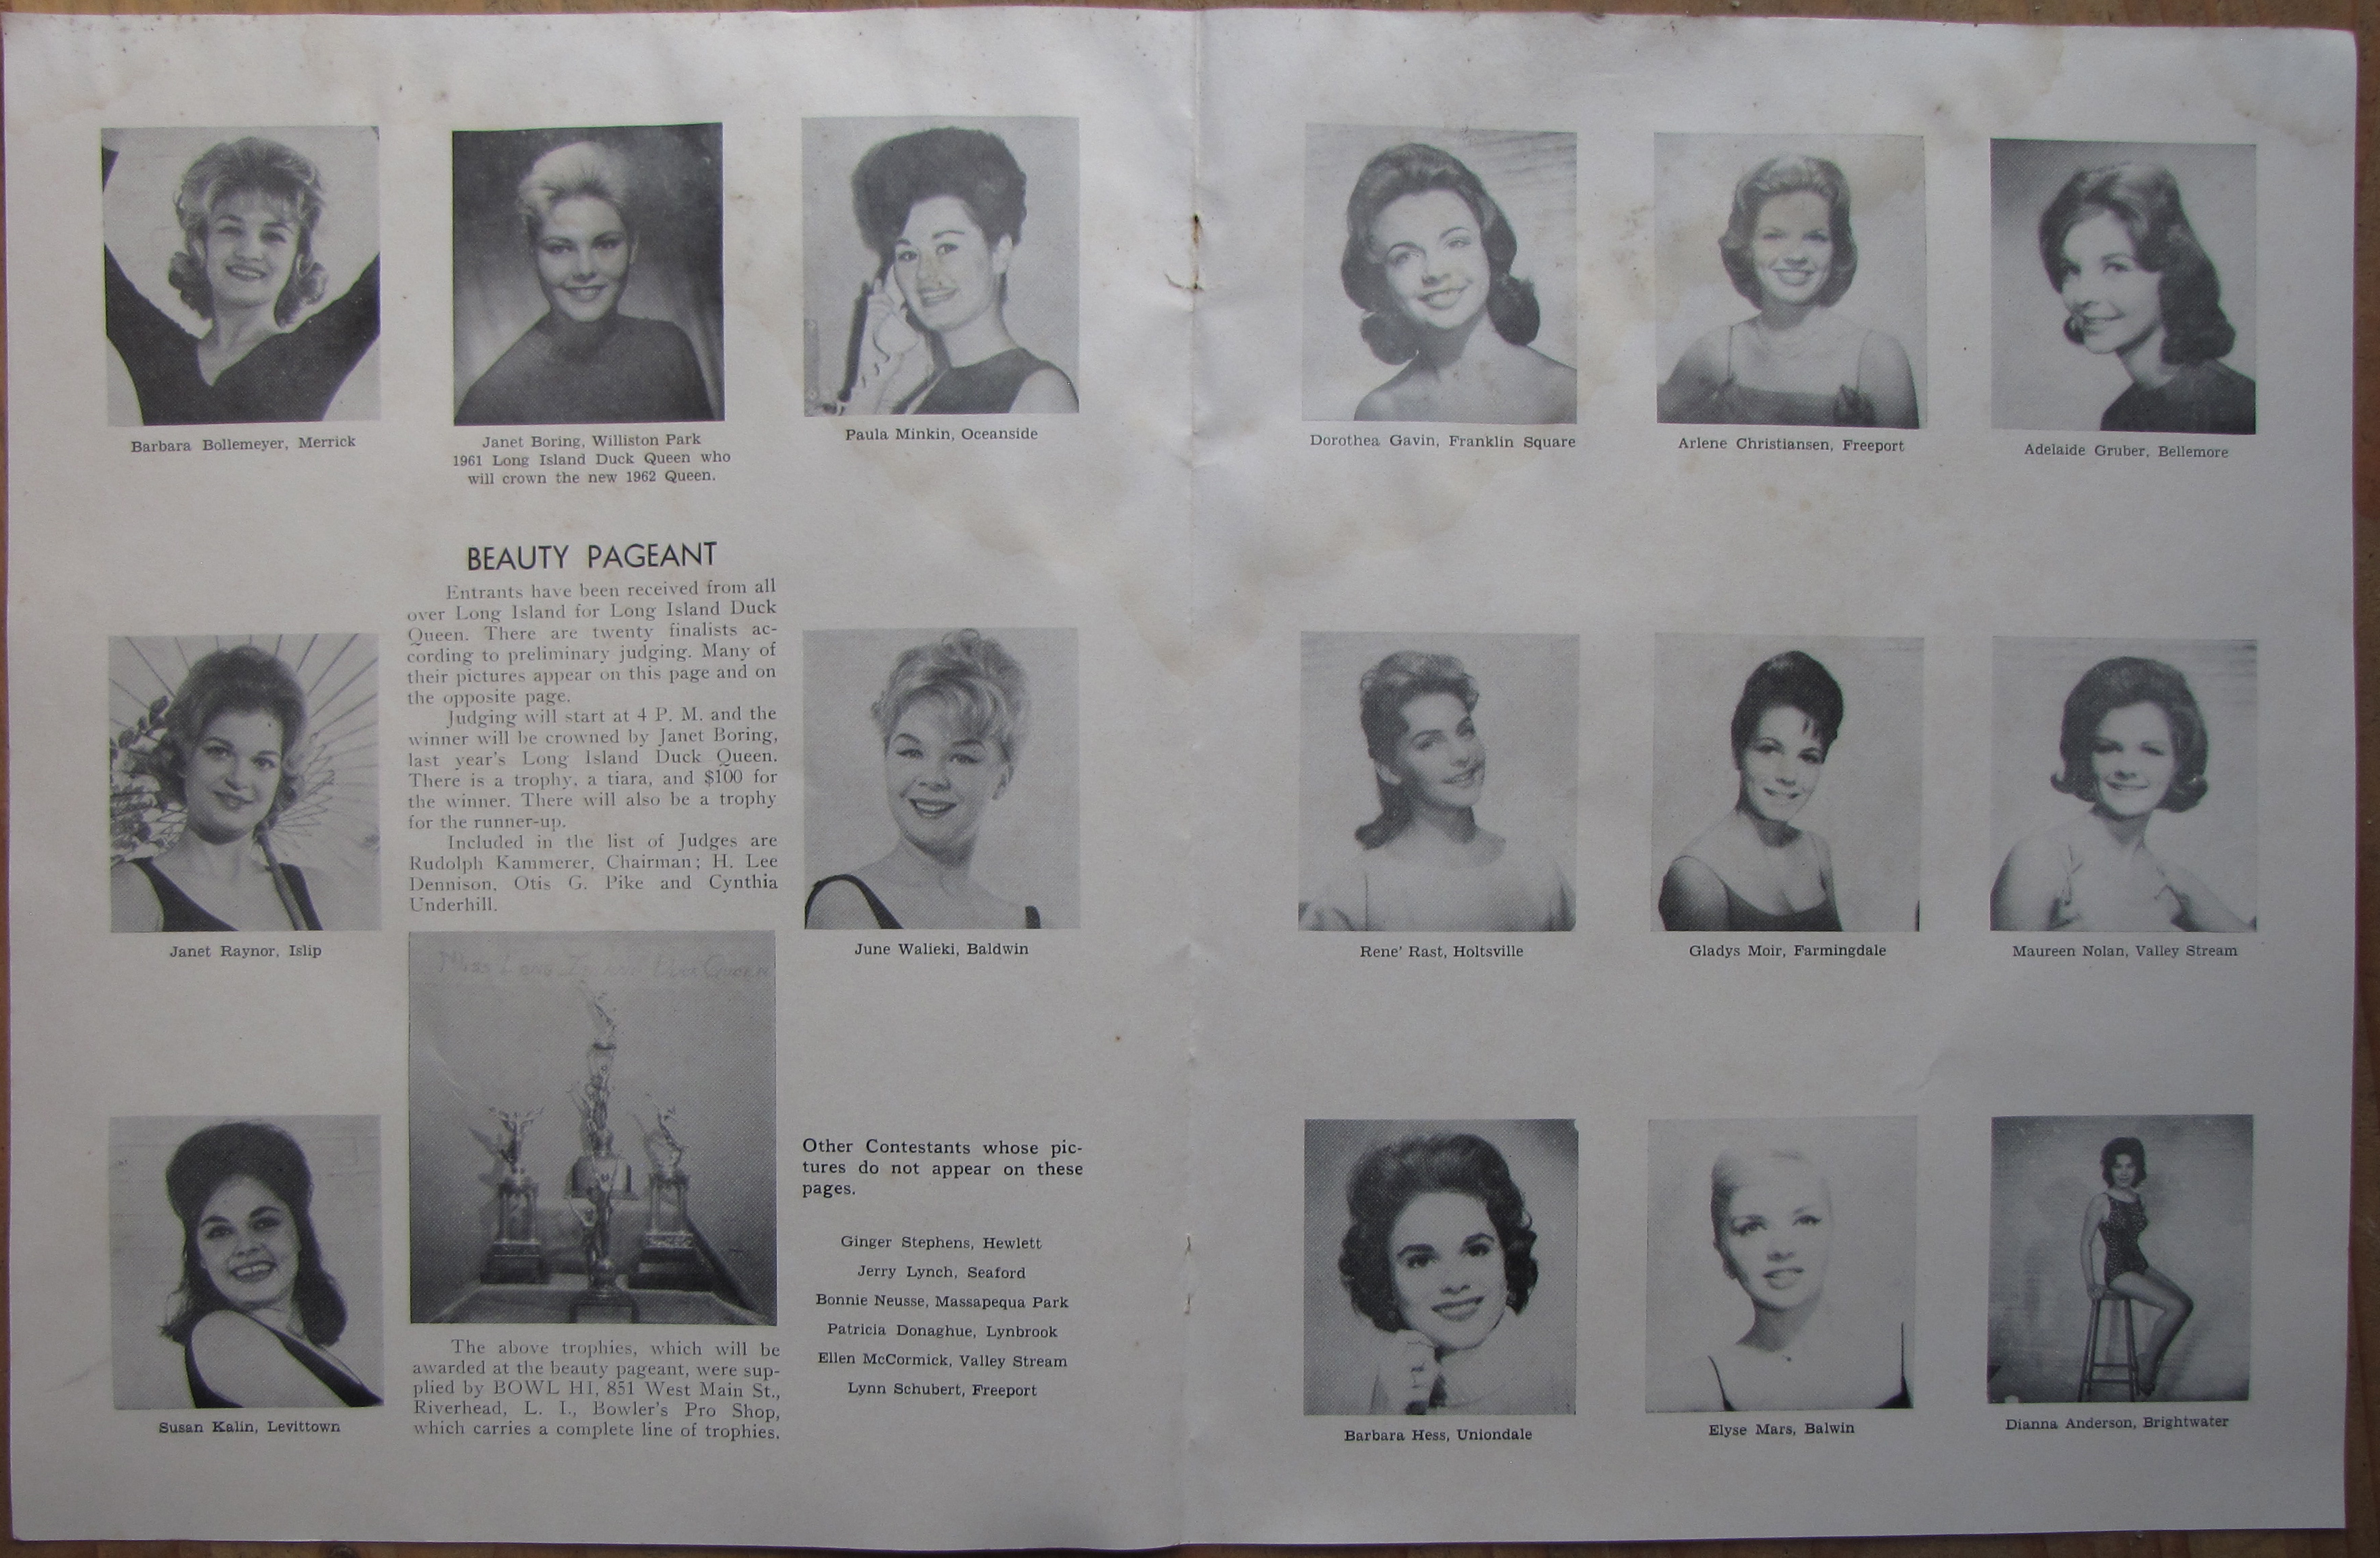 LIDFE_Elks_1962_BeautyPageant.JPG